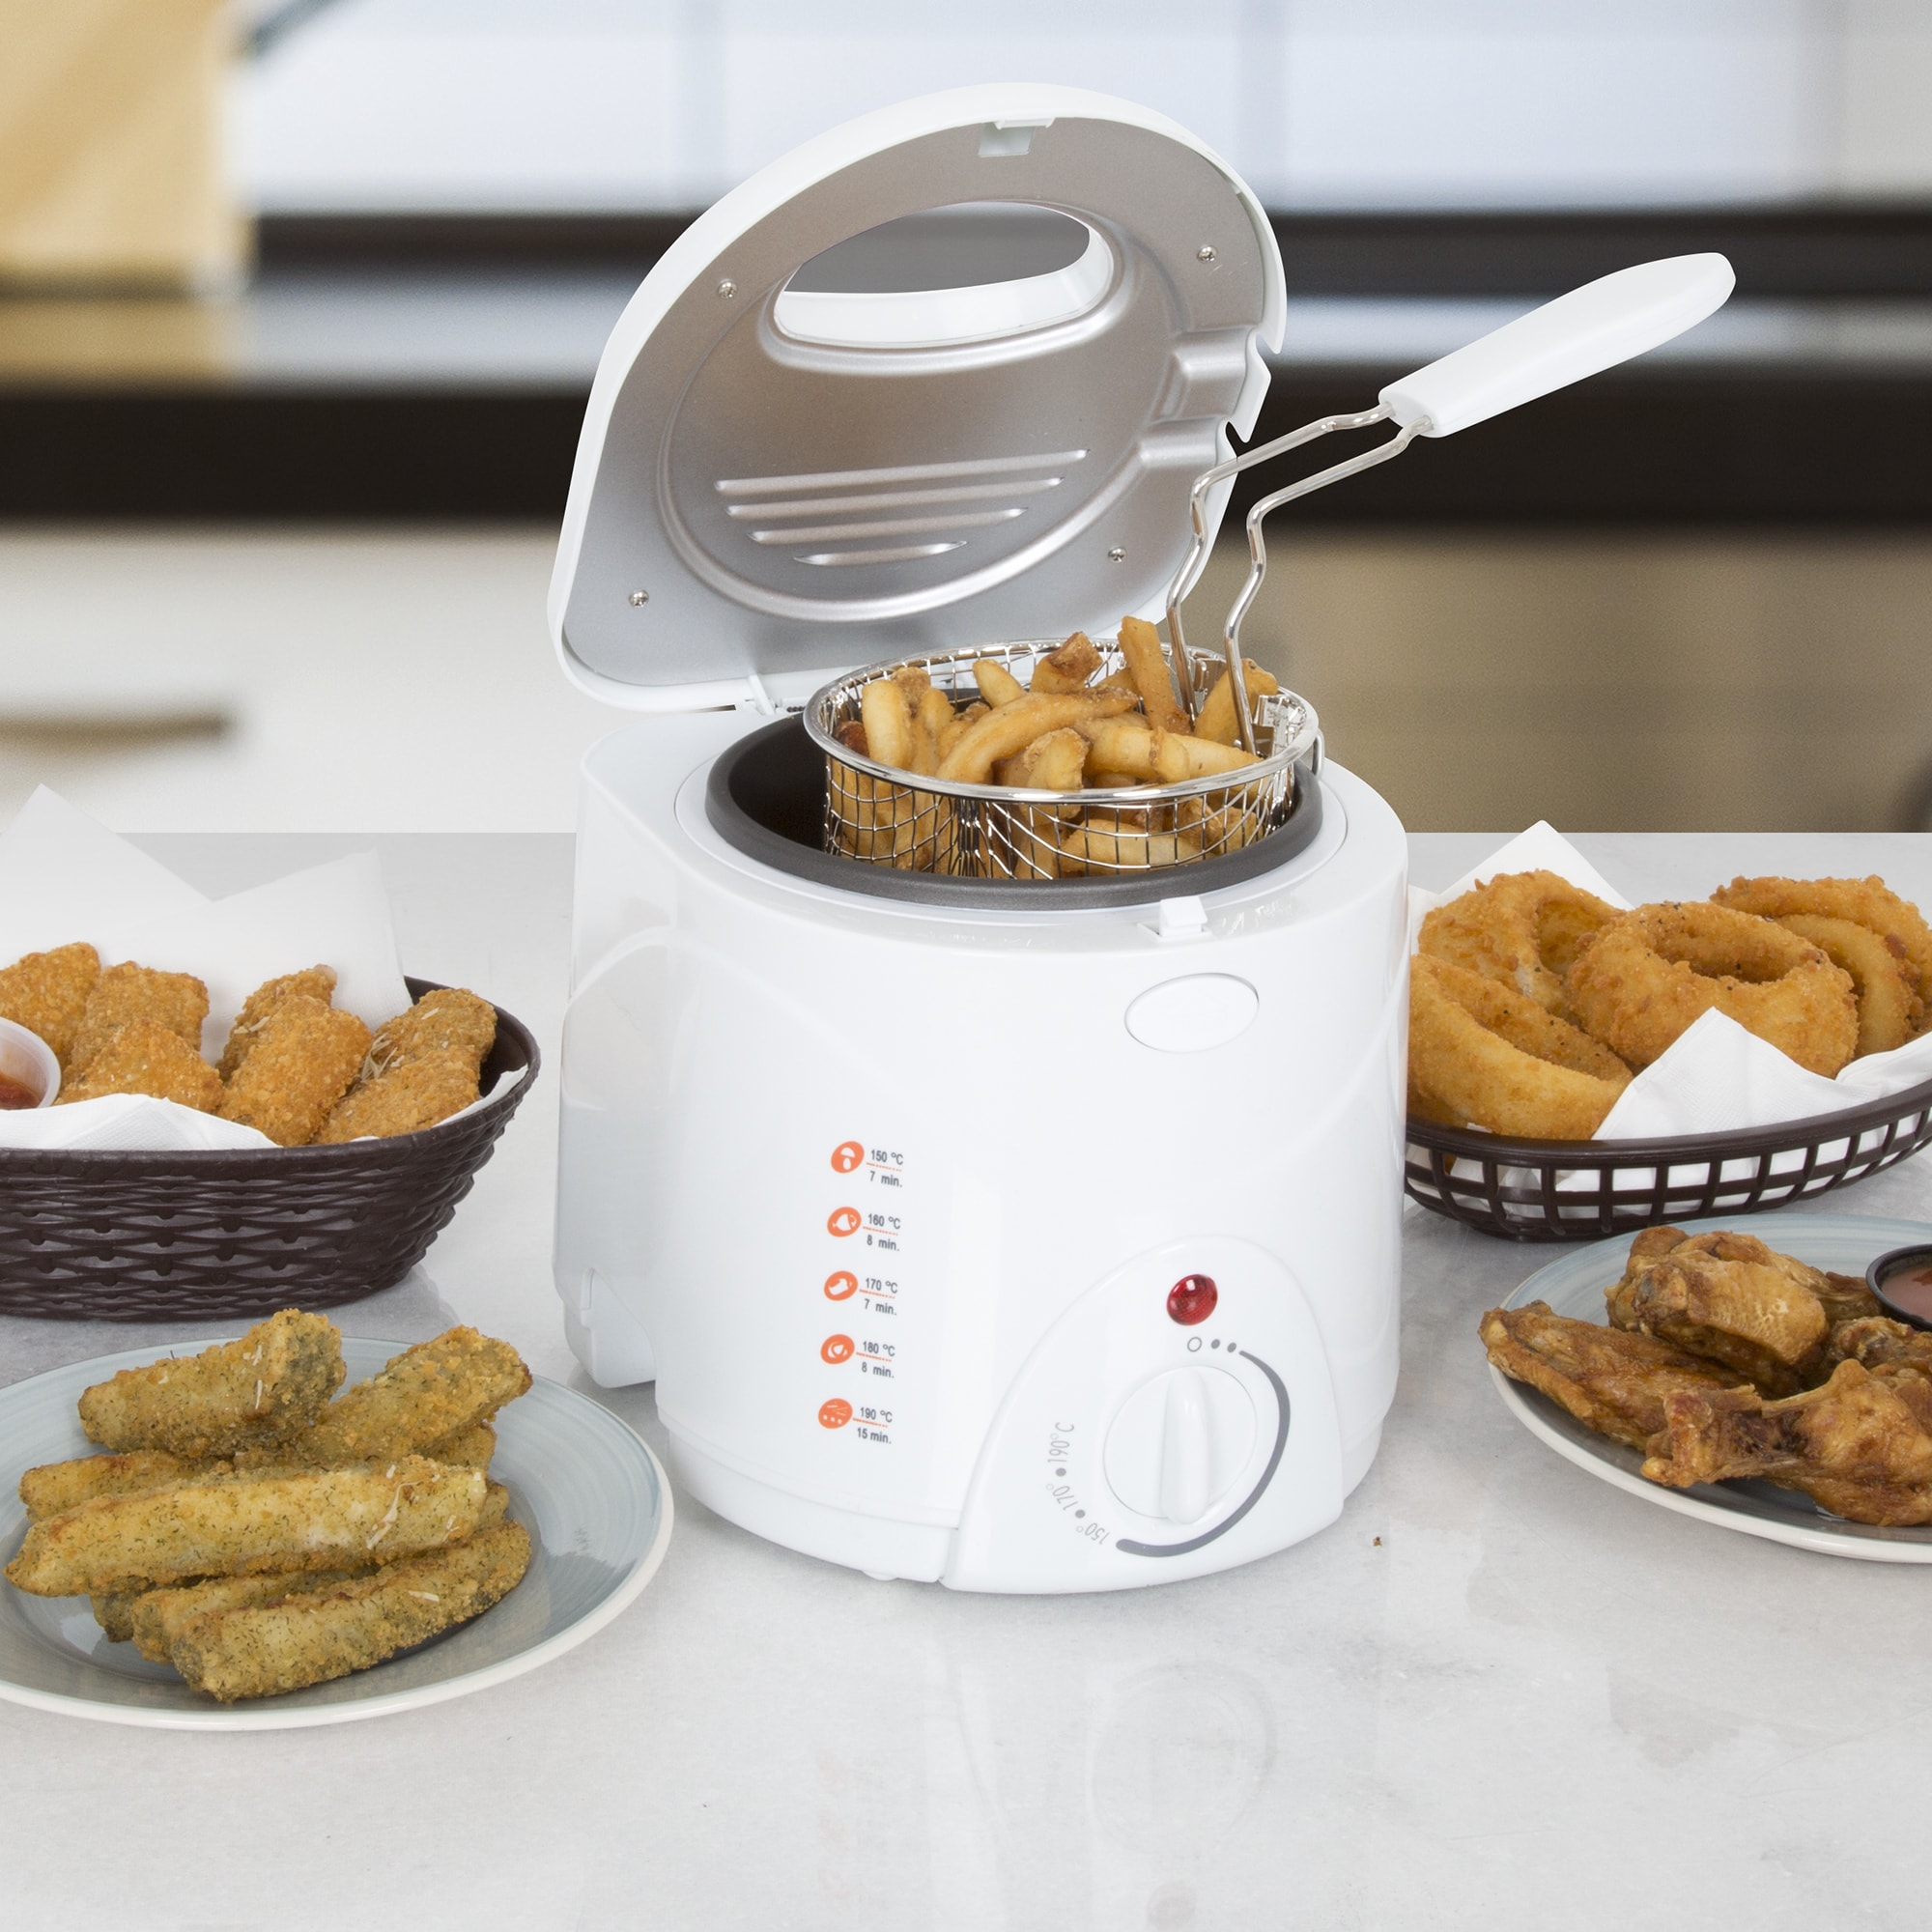 Classic Cuisine Cool Touch 1 Liter Deep Fryer with Wire F...